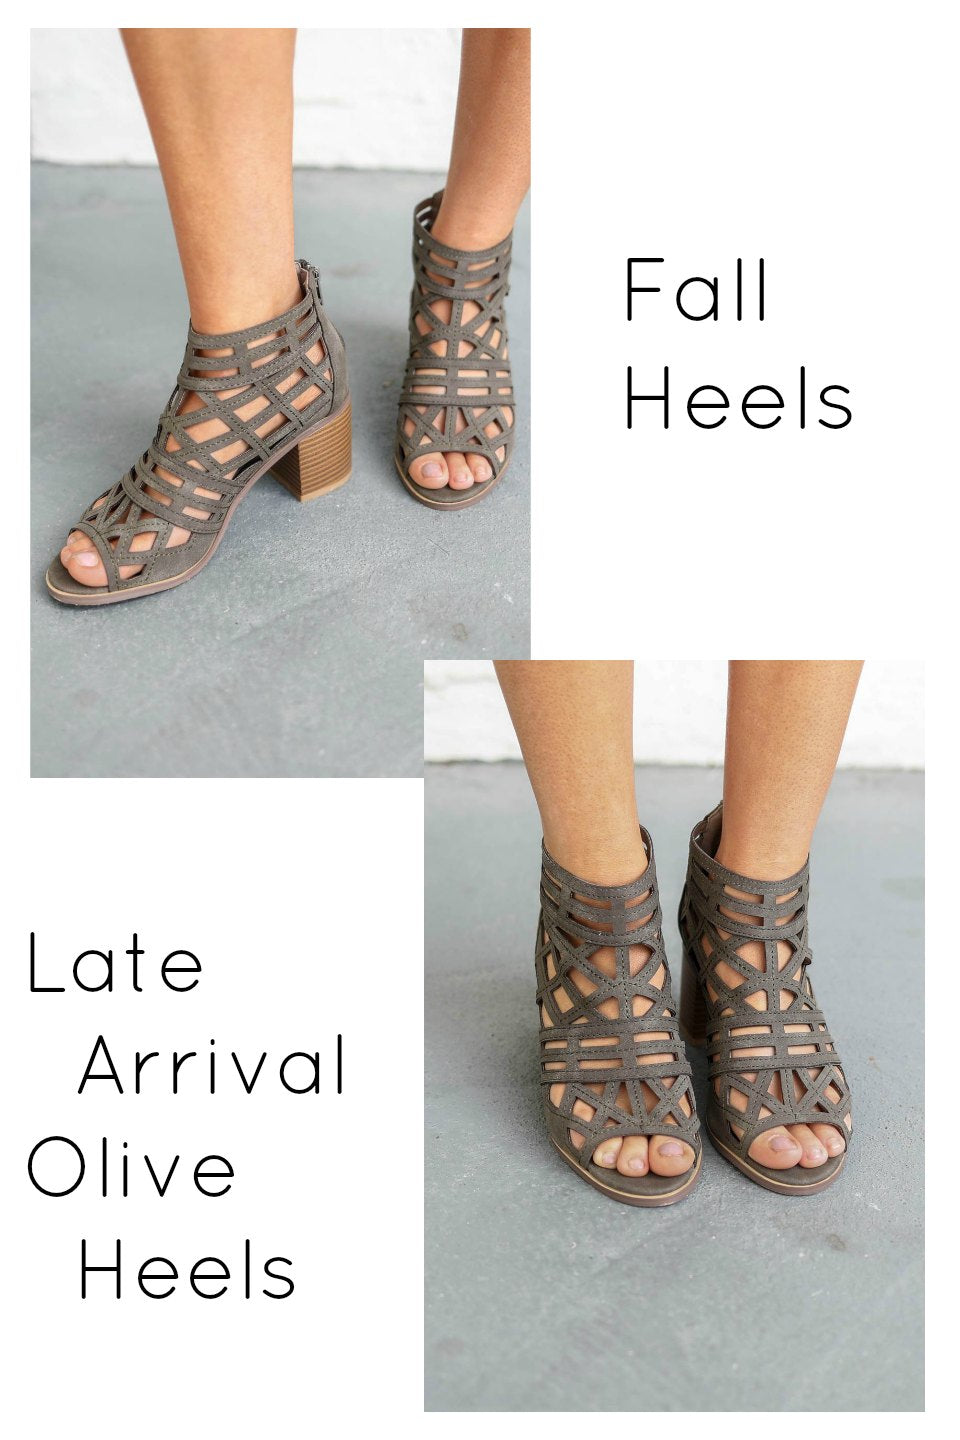 Late Arrival Olive Heels